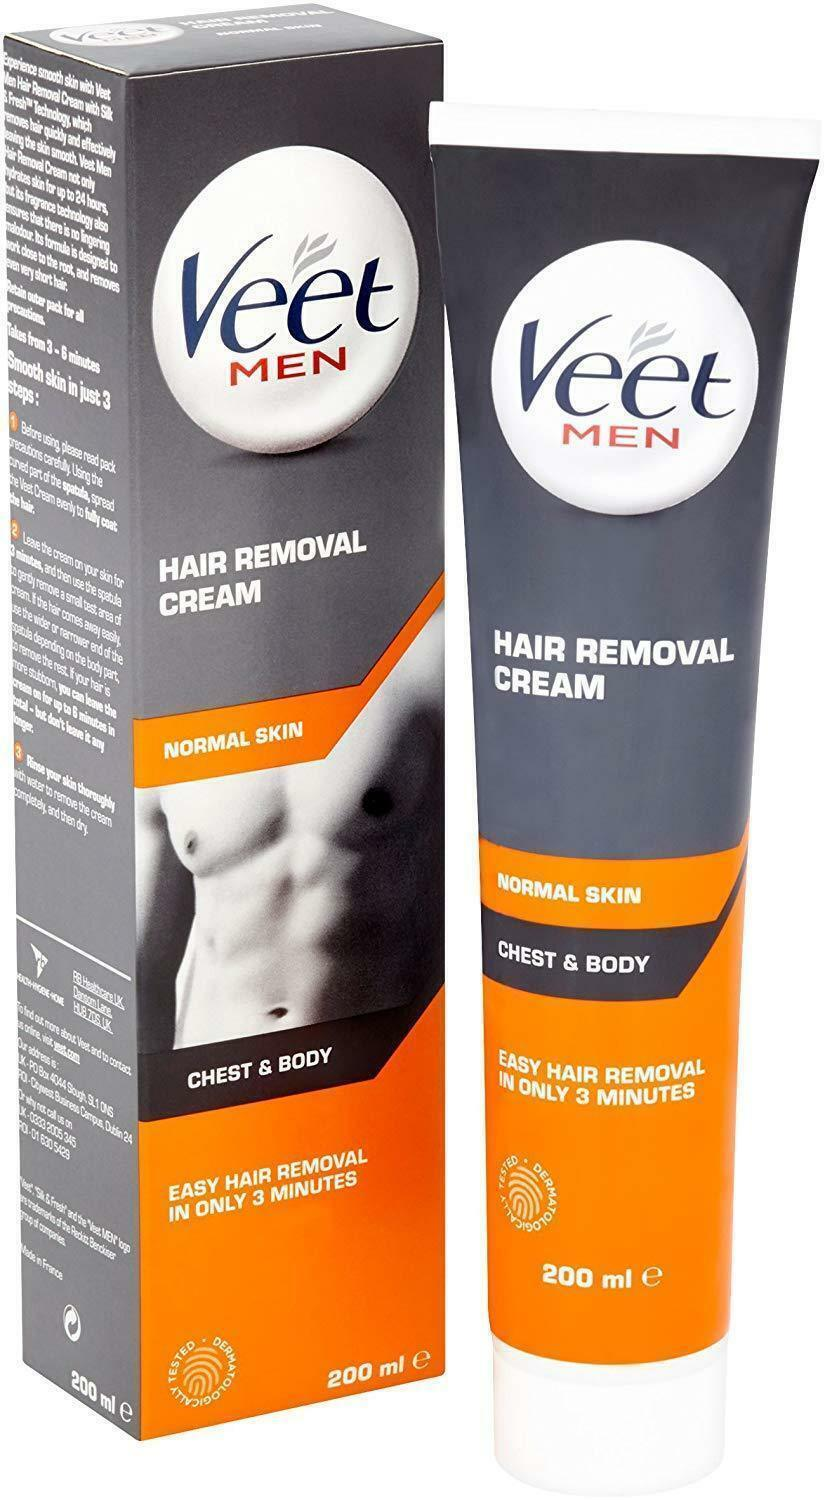 Veet Men Hair Removal Cream 200 Ml 5011417561980 Ebay